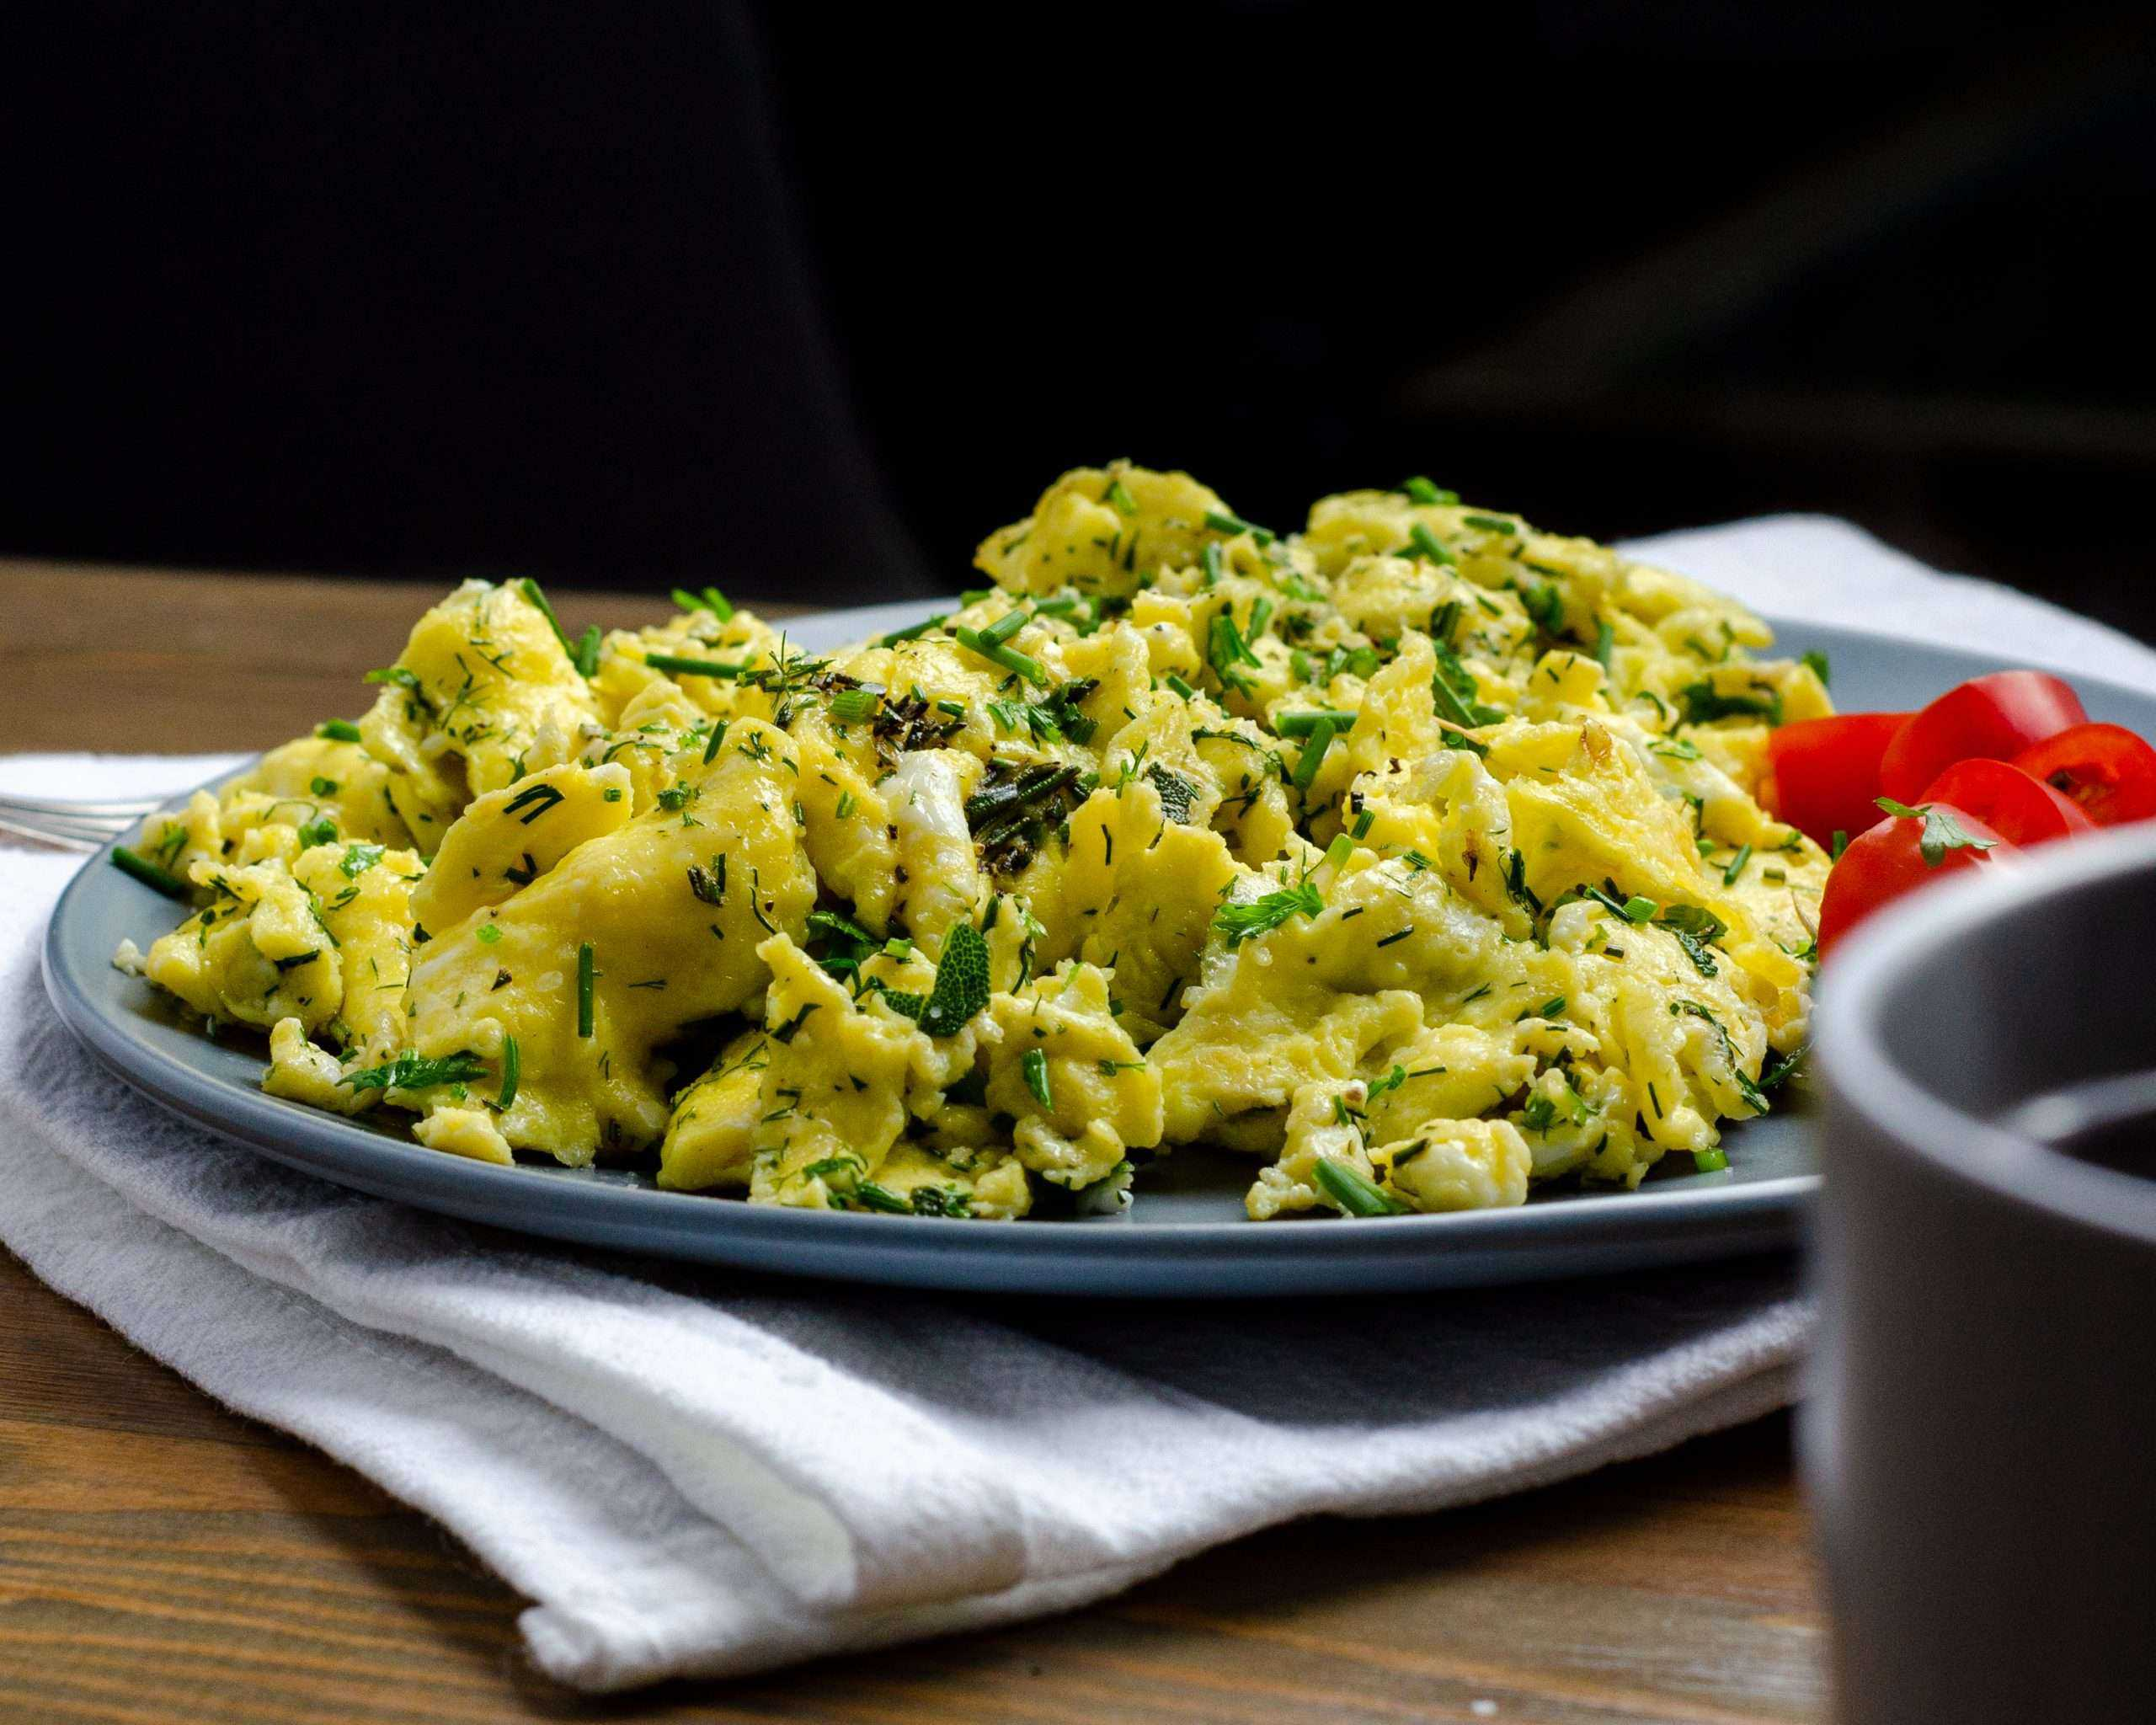 Flavourfull Herby Scrambled Eggs with coffee and tomatoes